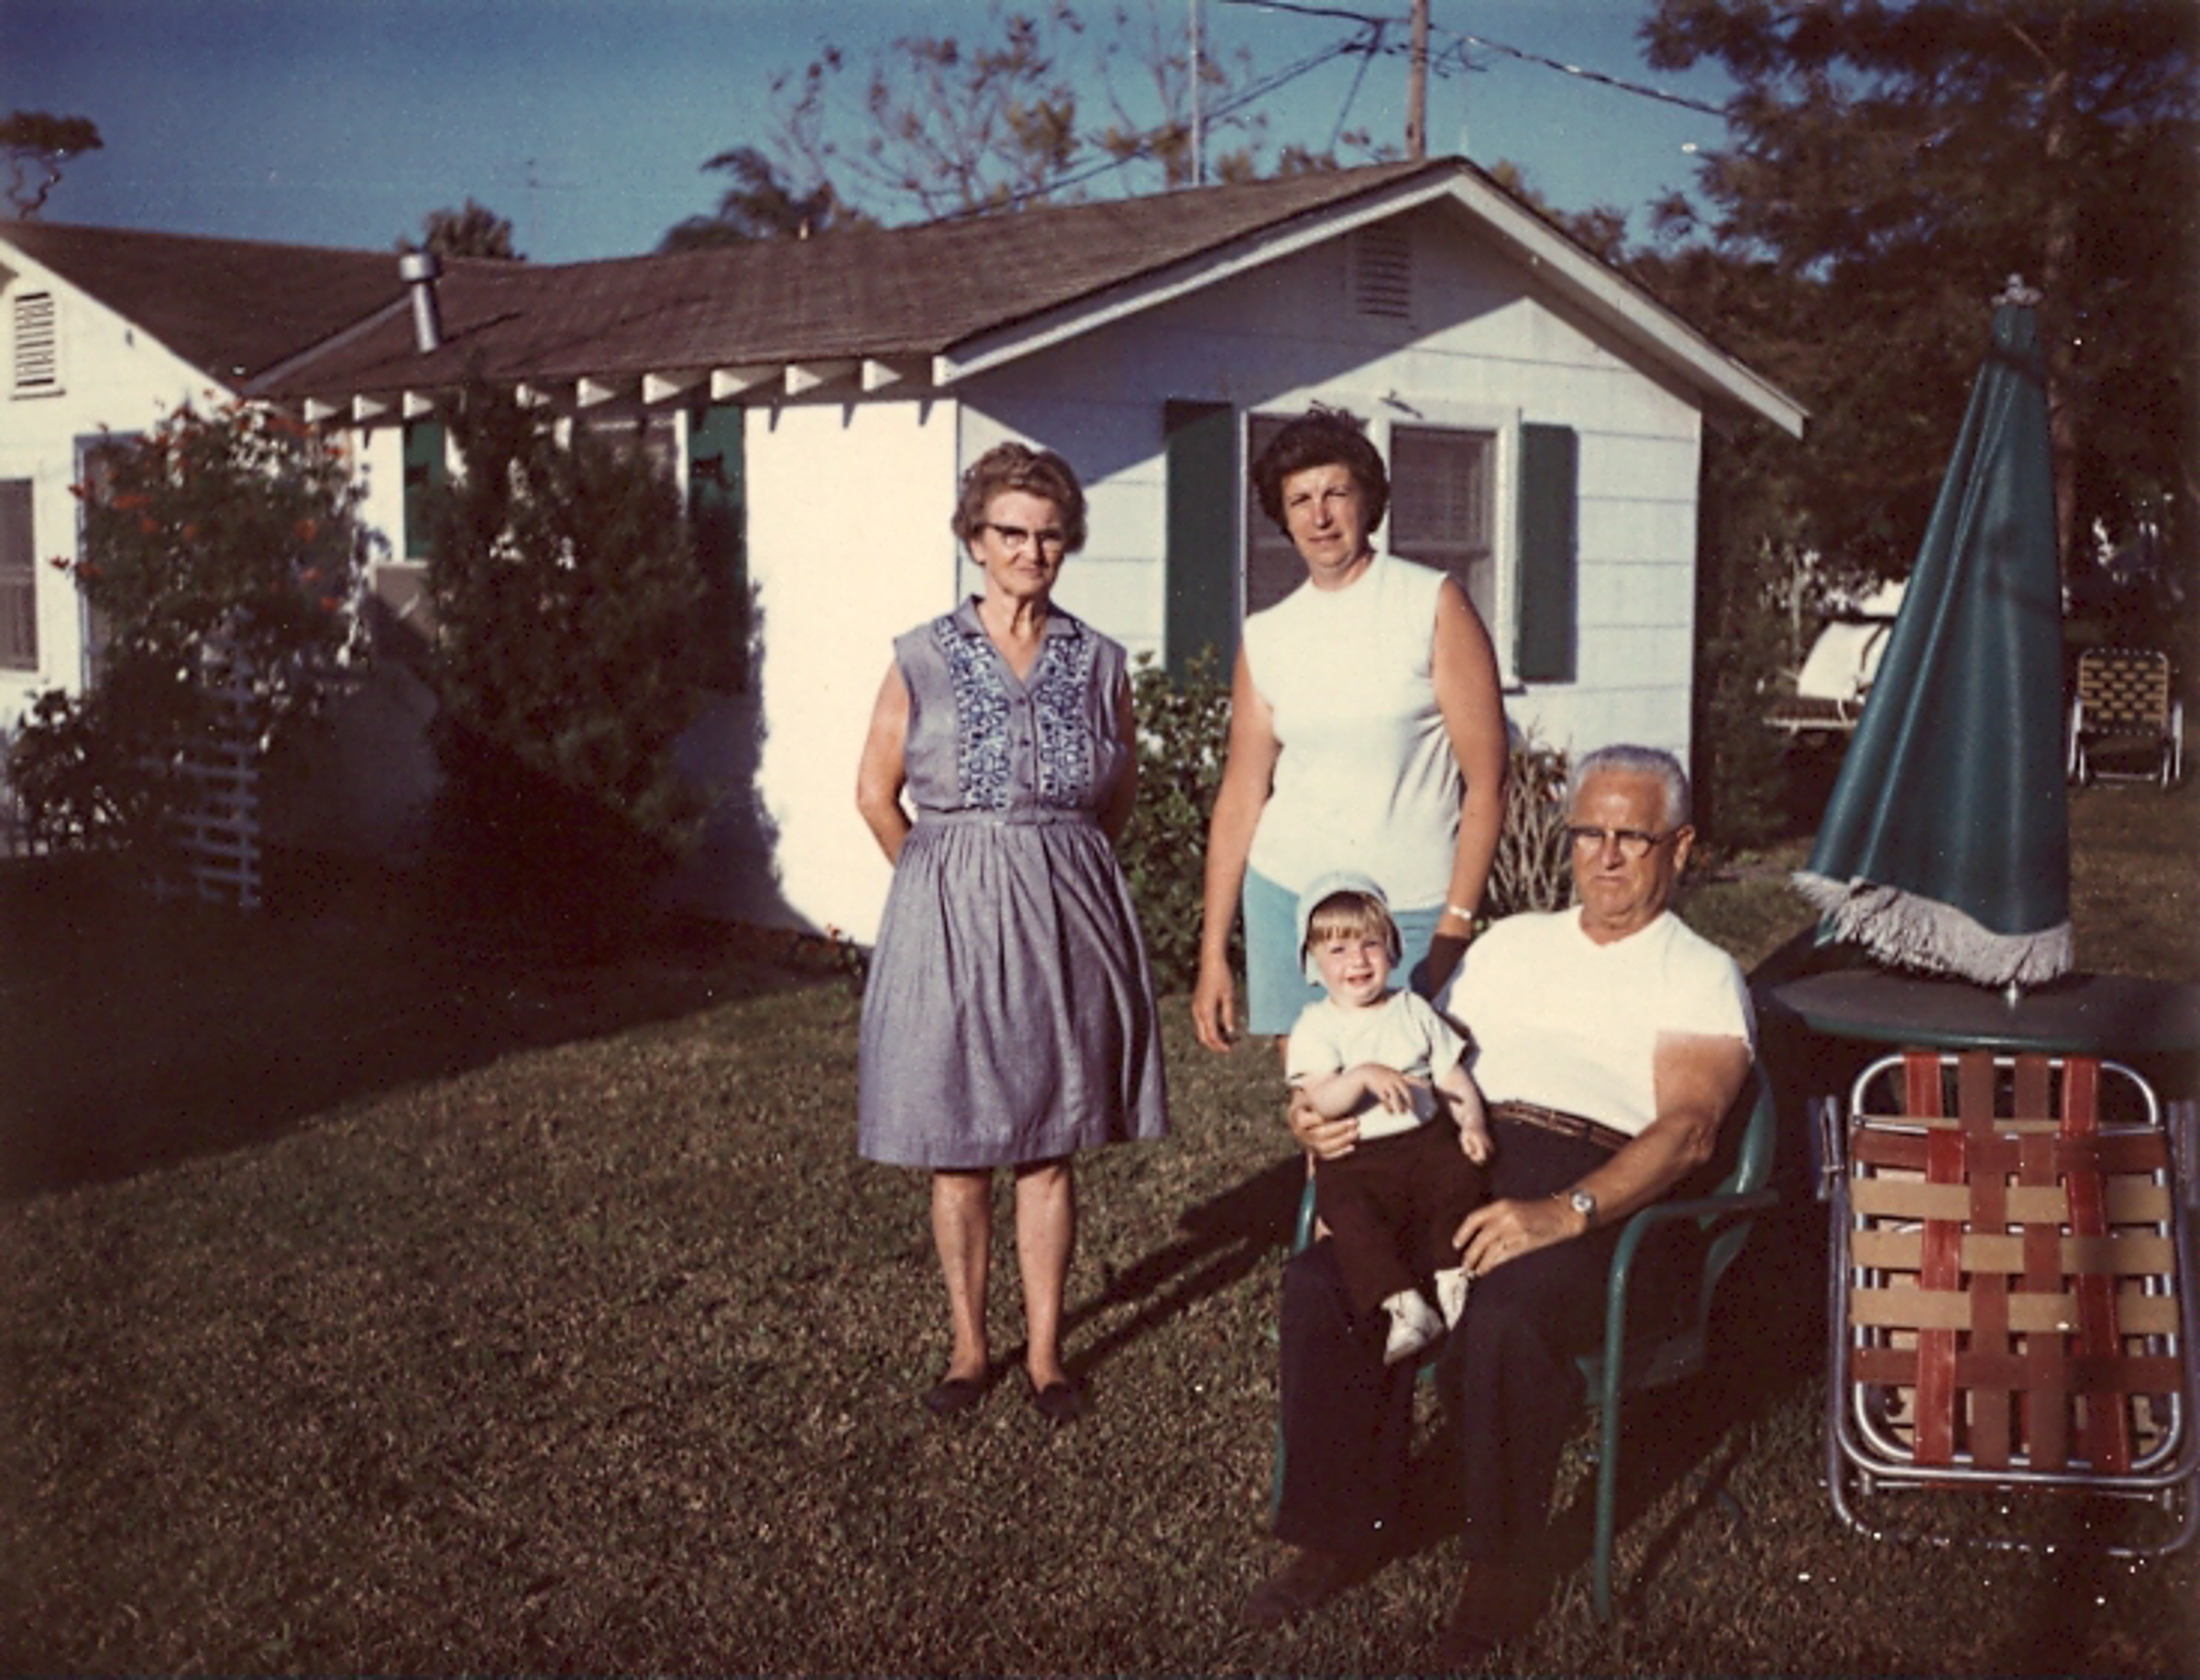 My Grandma Krull, mom and me on Grandpa Krull's lap. He died in May of that year.